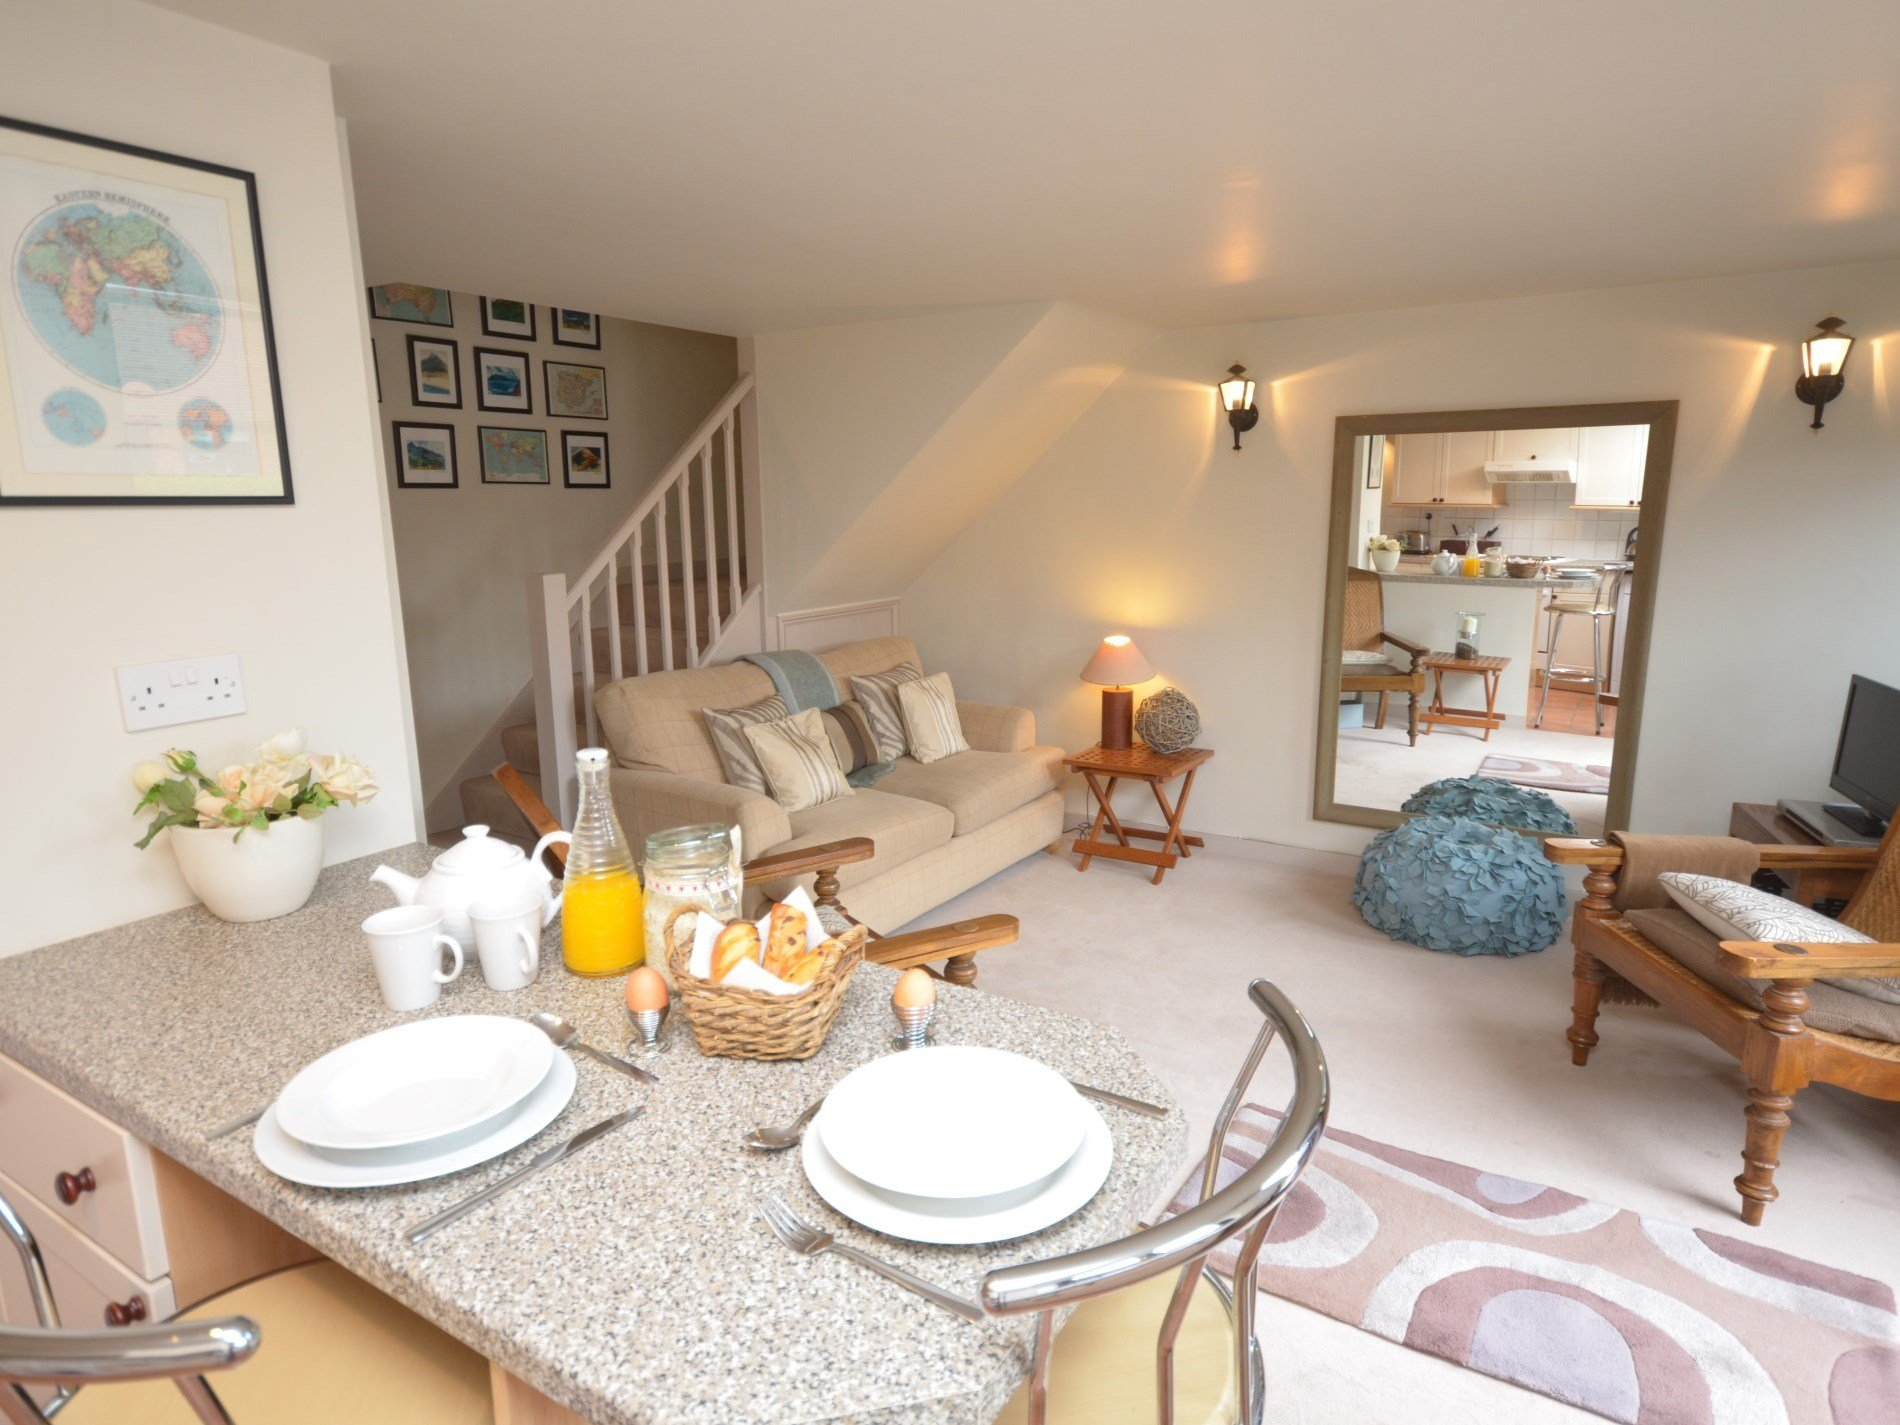 Charming open plan living area in this cosy cottage